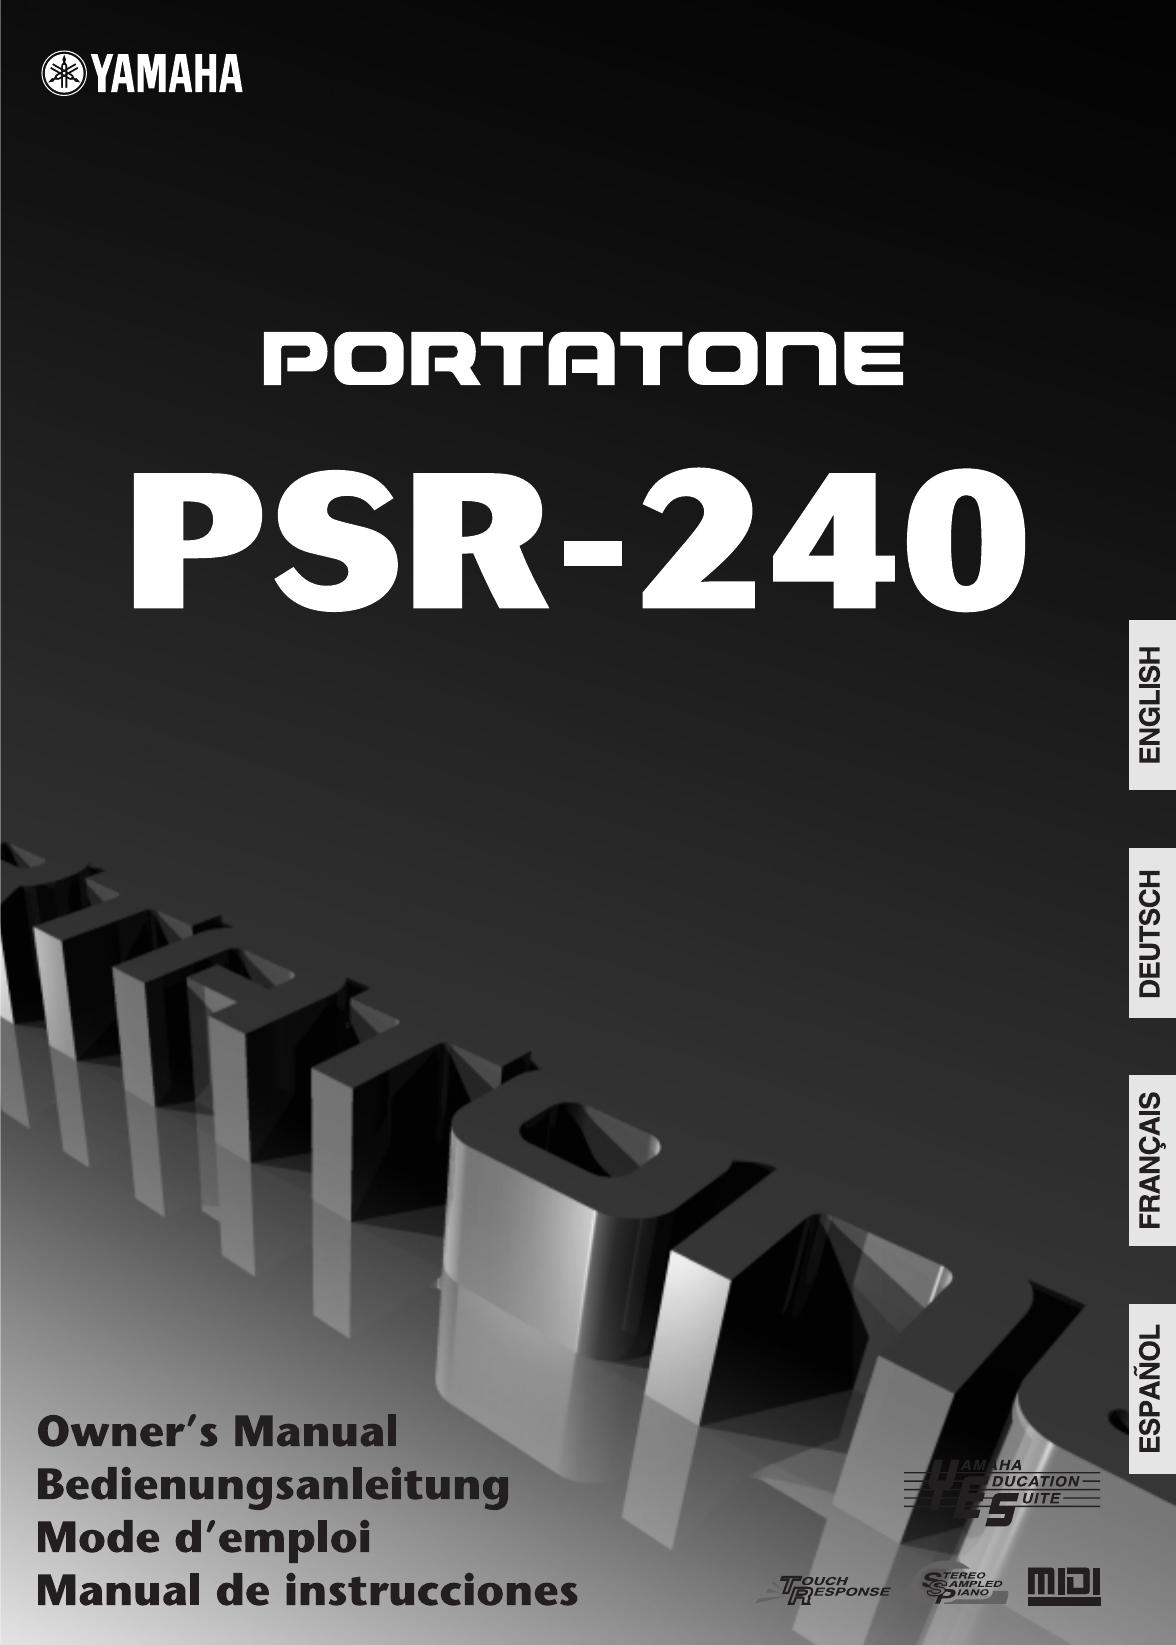 yamaha musical instrument psr 240 user guide manualsonline com rh manualsonline com manual teclado yamaha psr 240 em portugues manual do teclado yamaha psr 240 em portugues